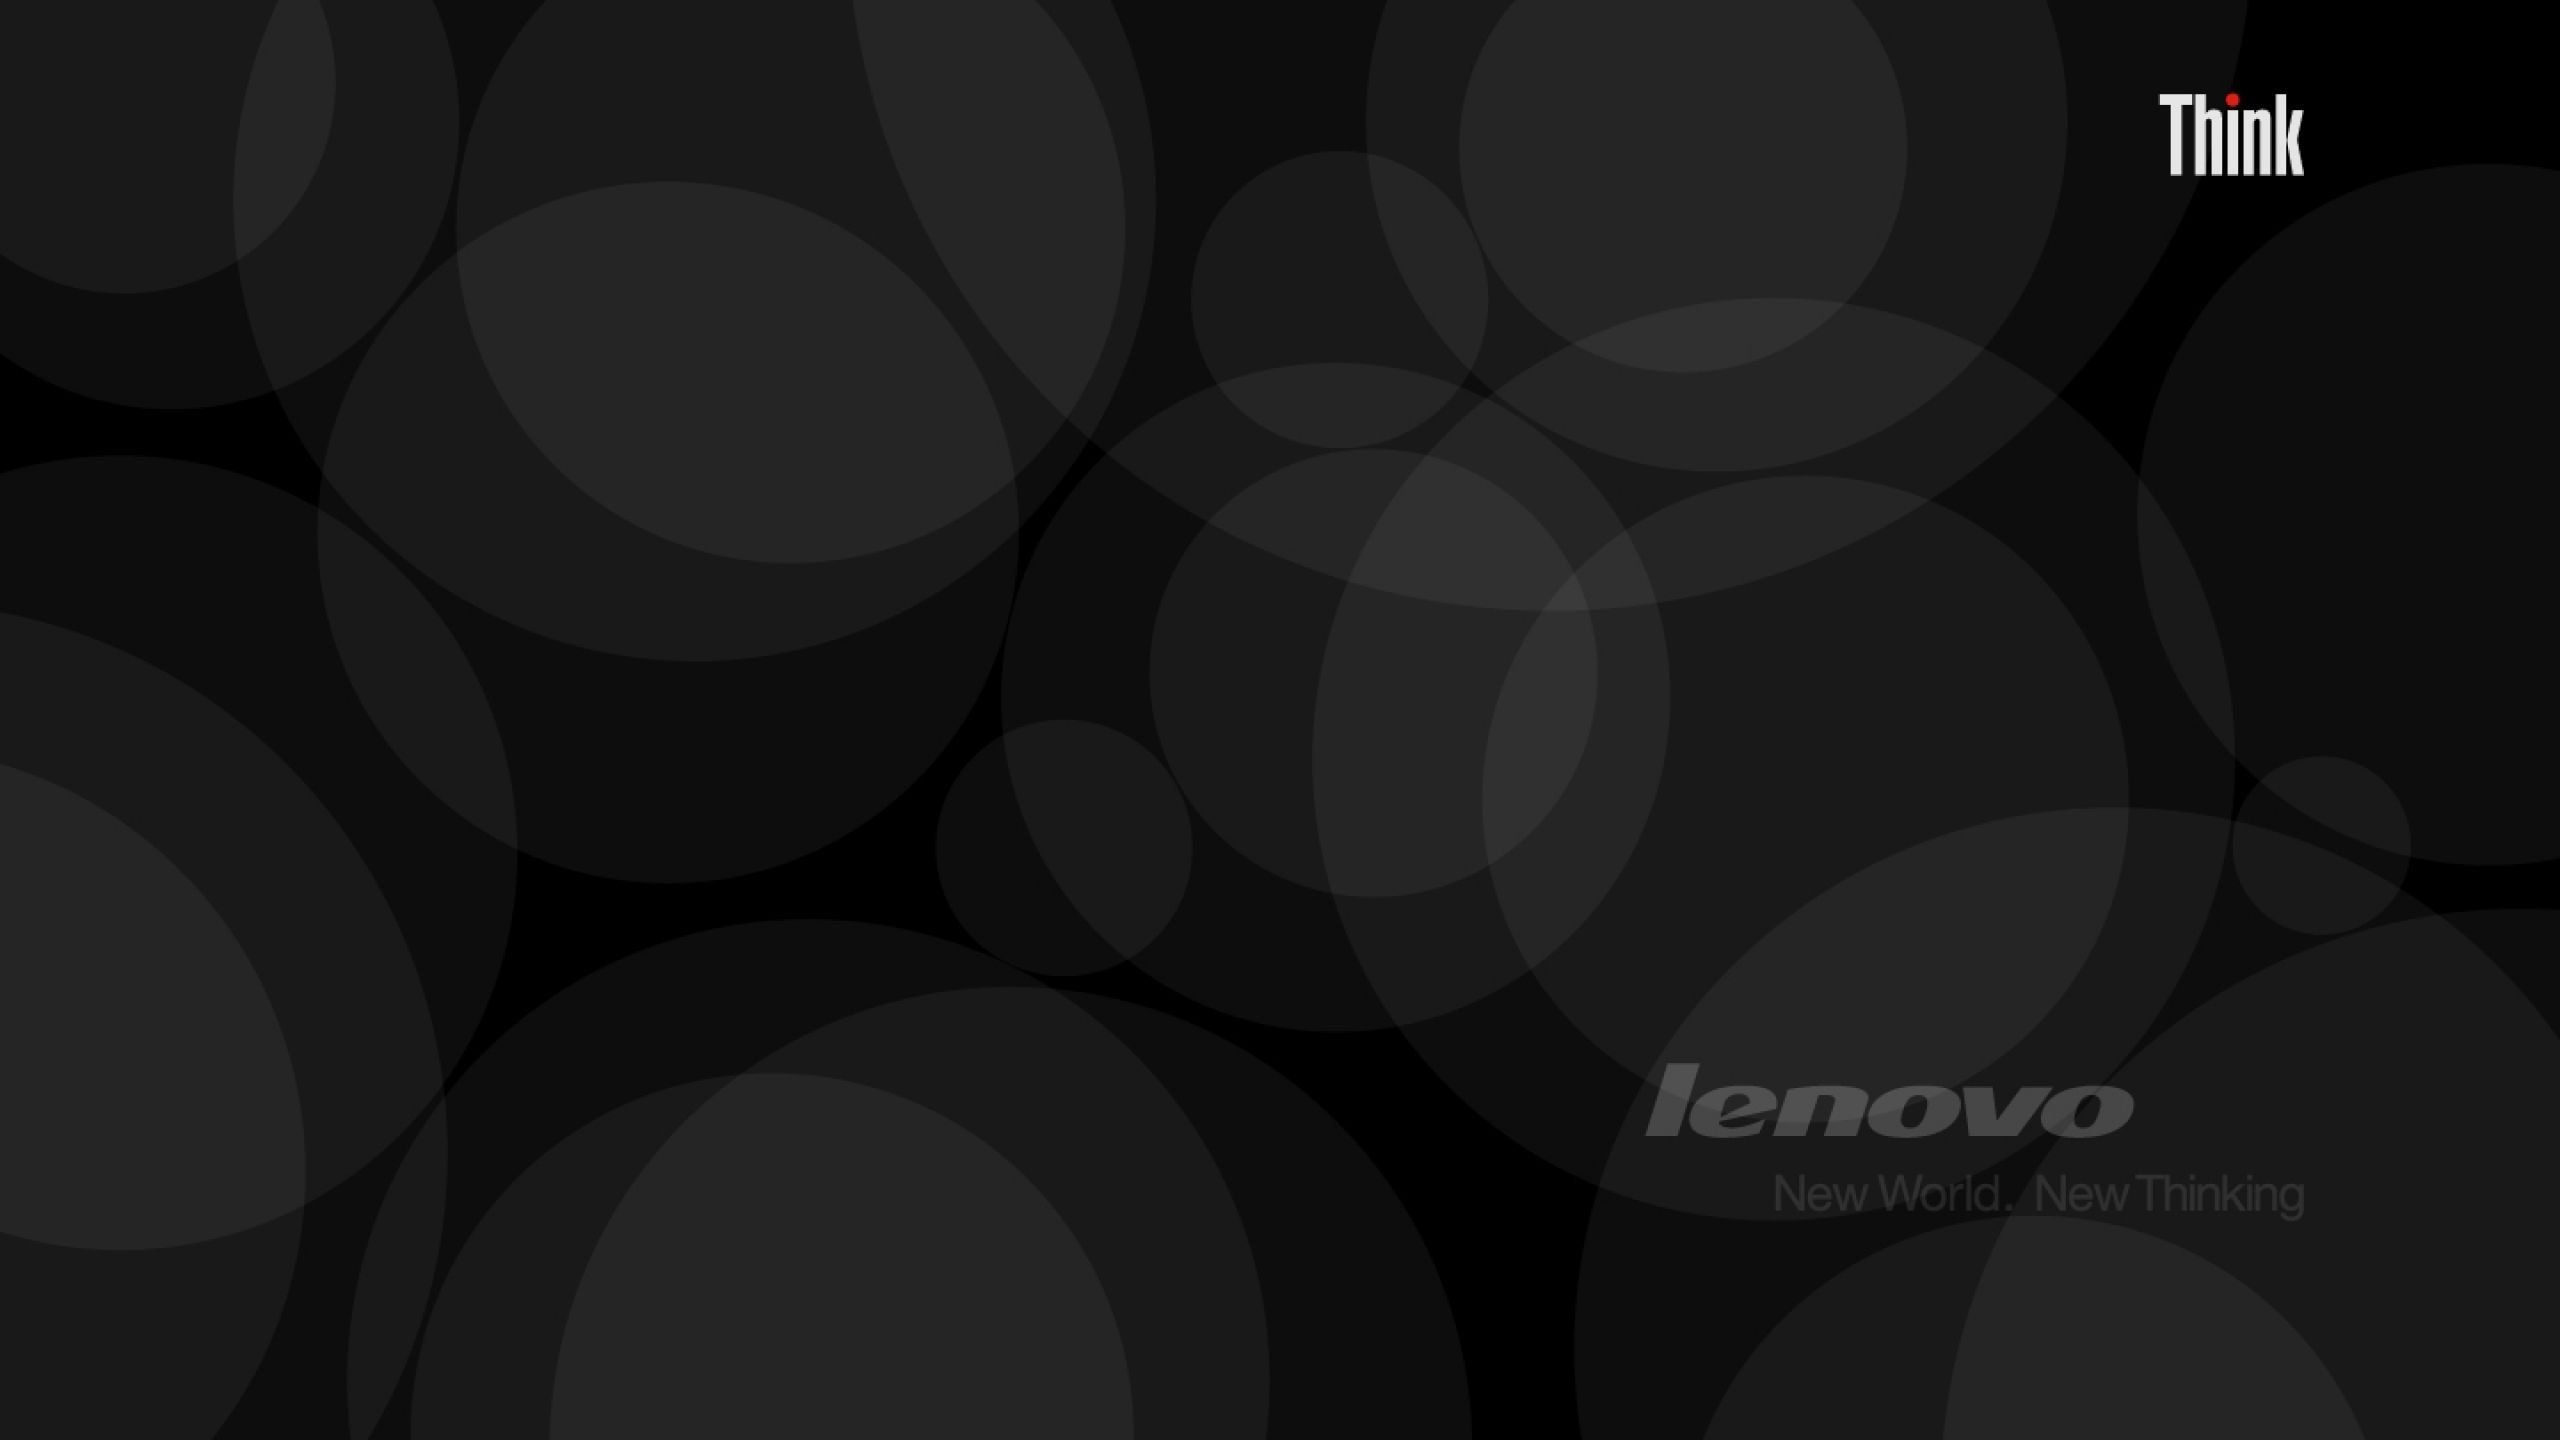 Lenovo Thinkpad Wallpapers Download Free Lenovo Wallpapers